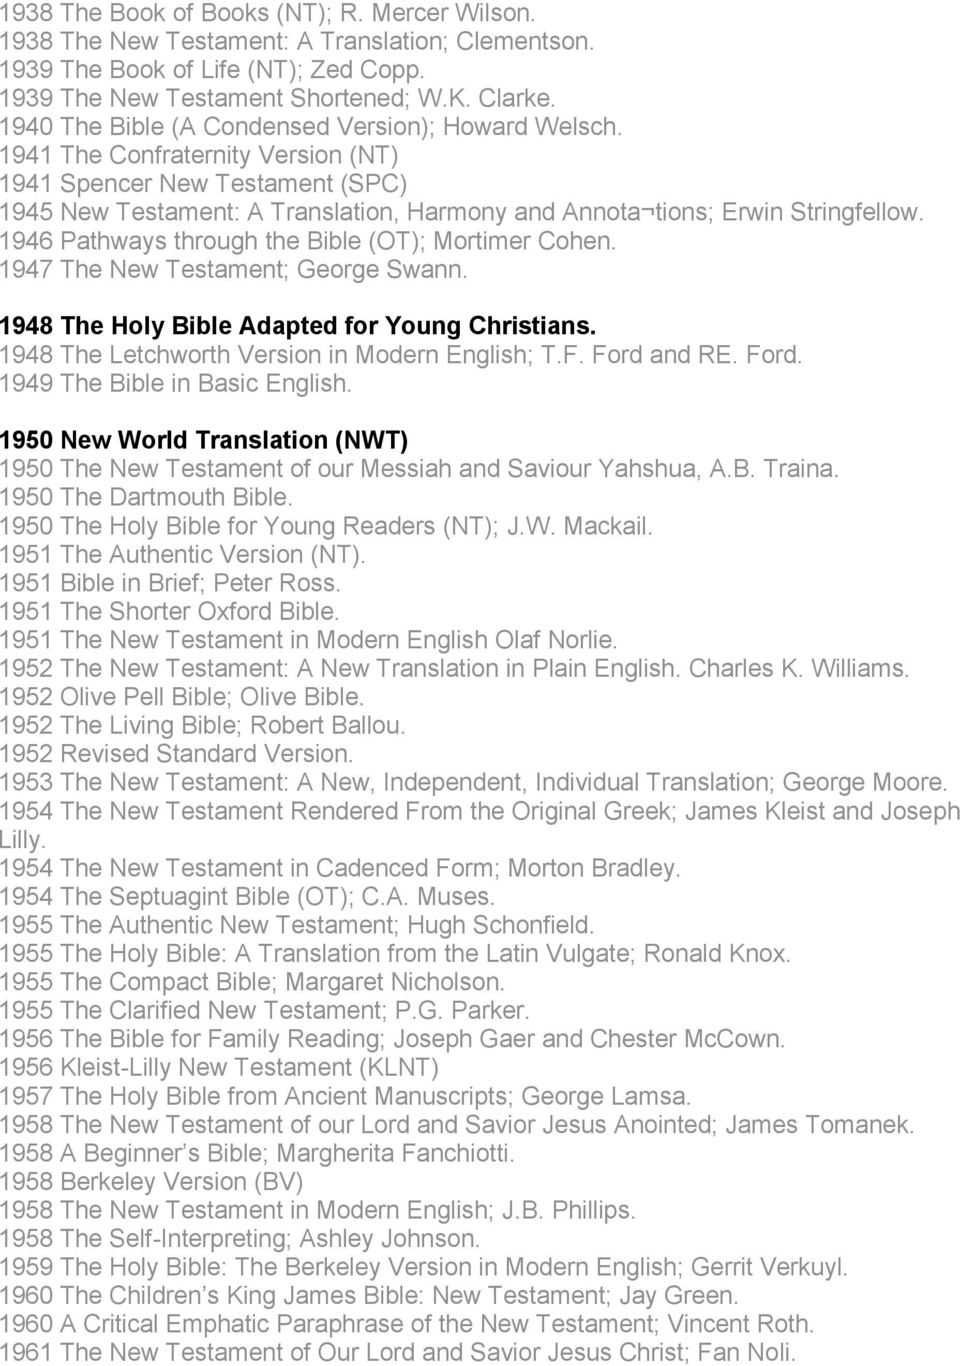 THE MANY FALSE BIBLE VERSIONS SINCE 1881 ON THE MARKET TODAY - PDF